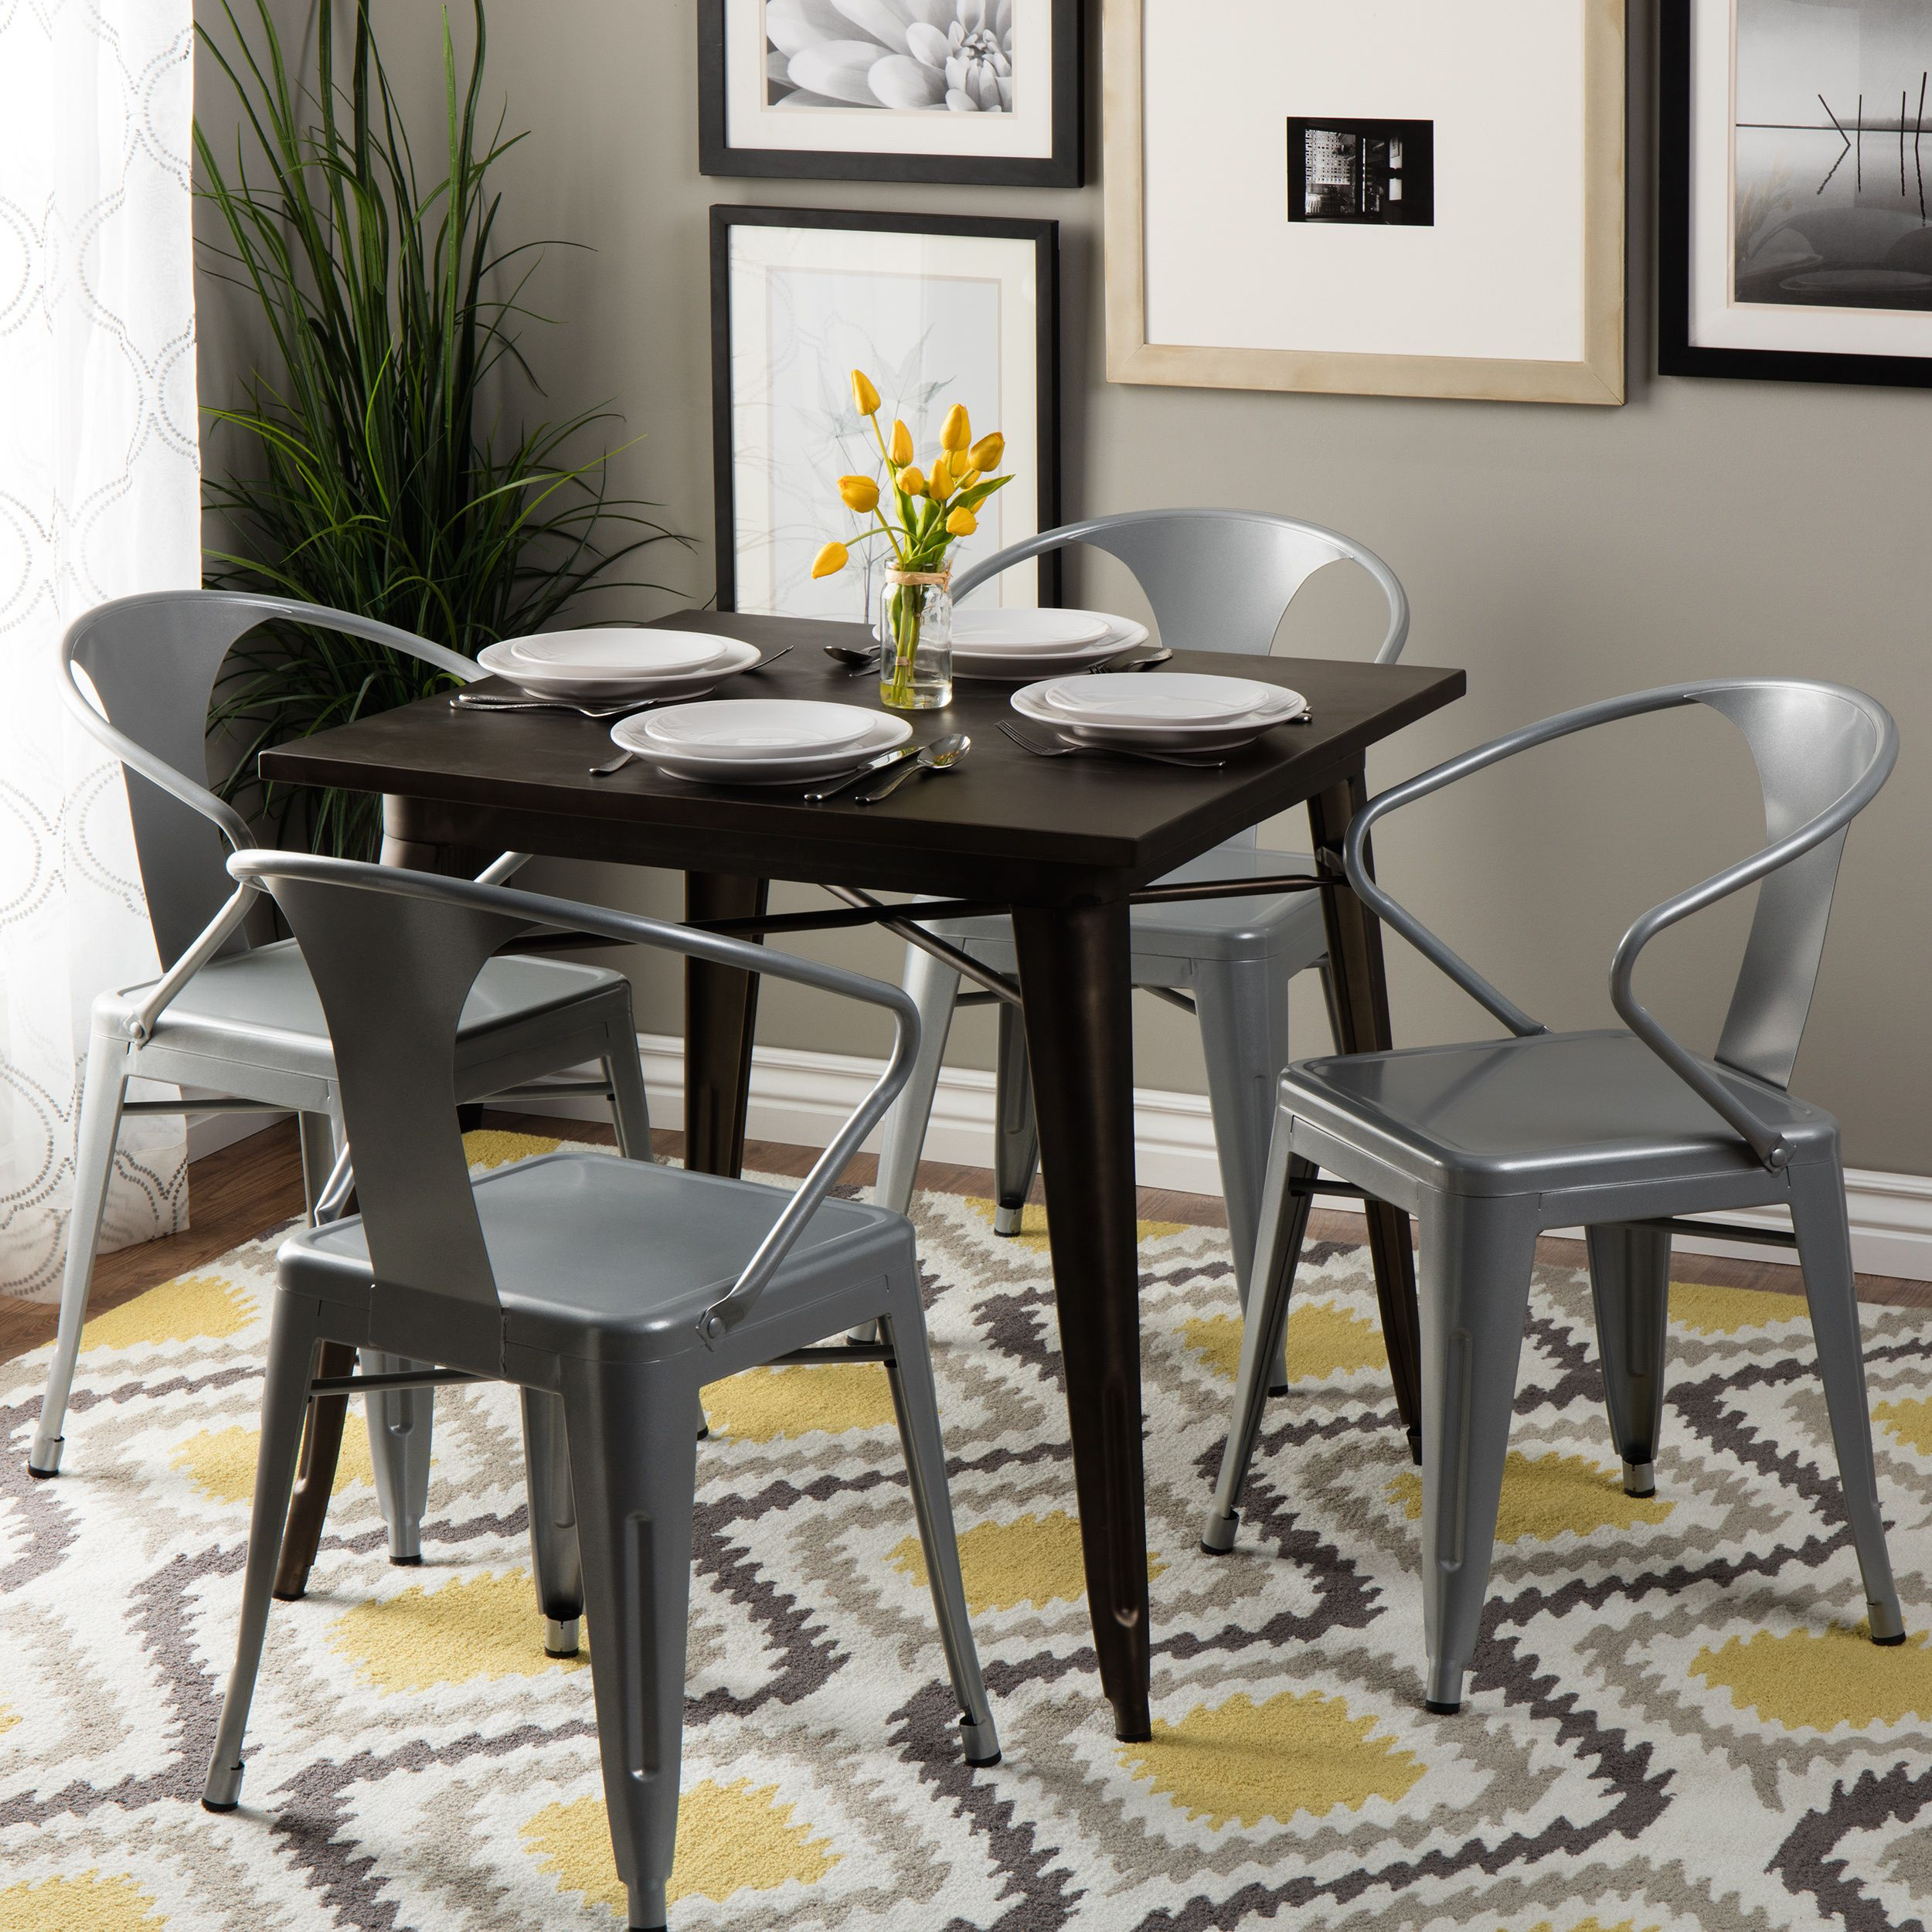 Lovely Silver Tabouret Stacking Chairs (Set Of 4) By I Love Living